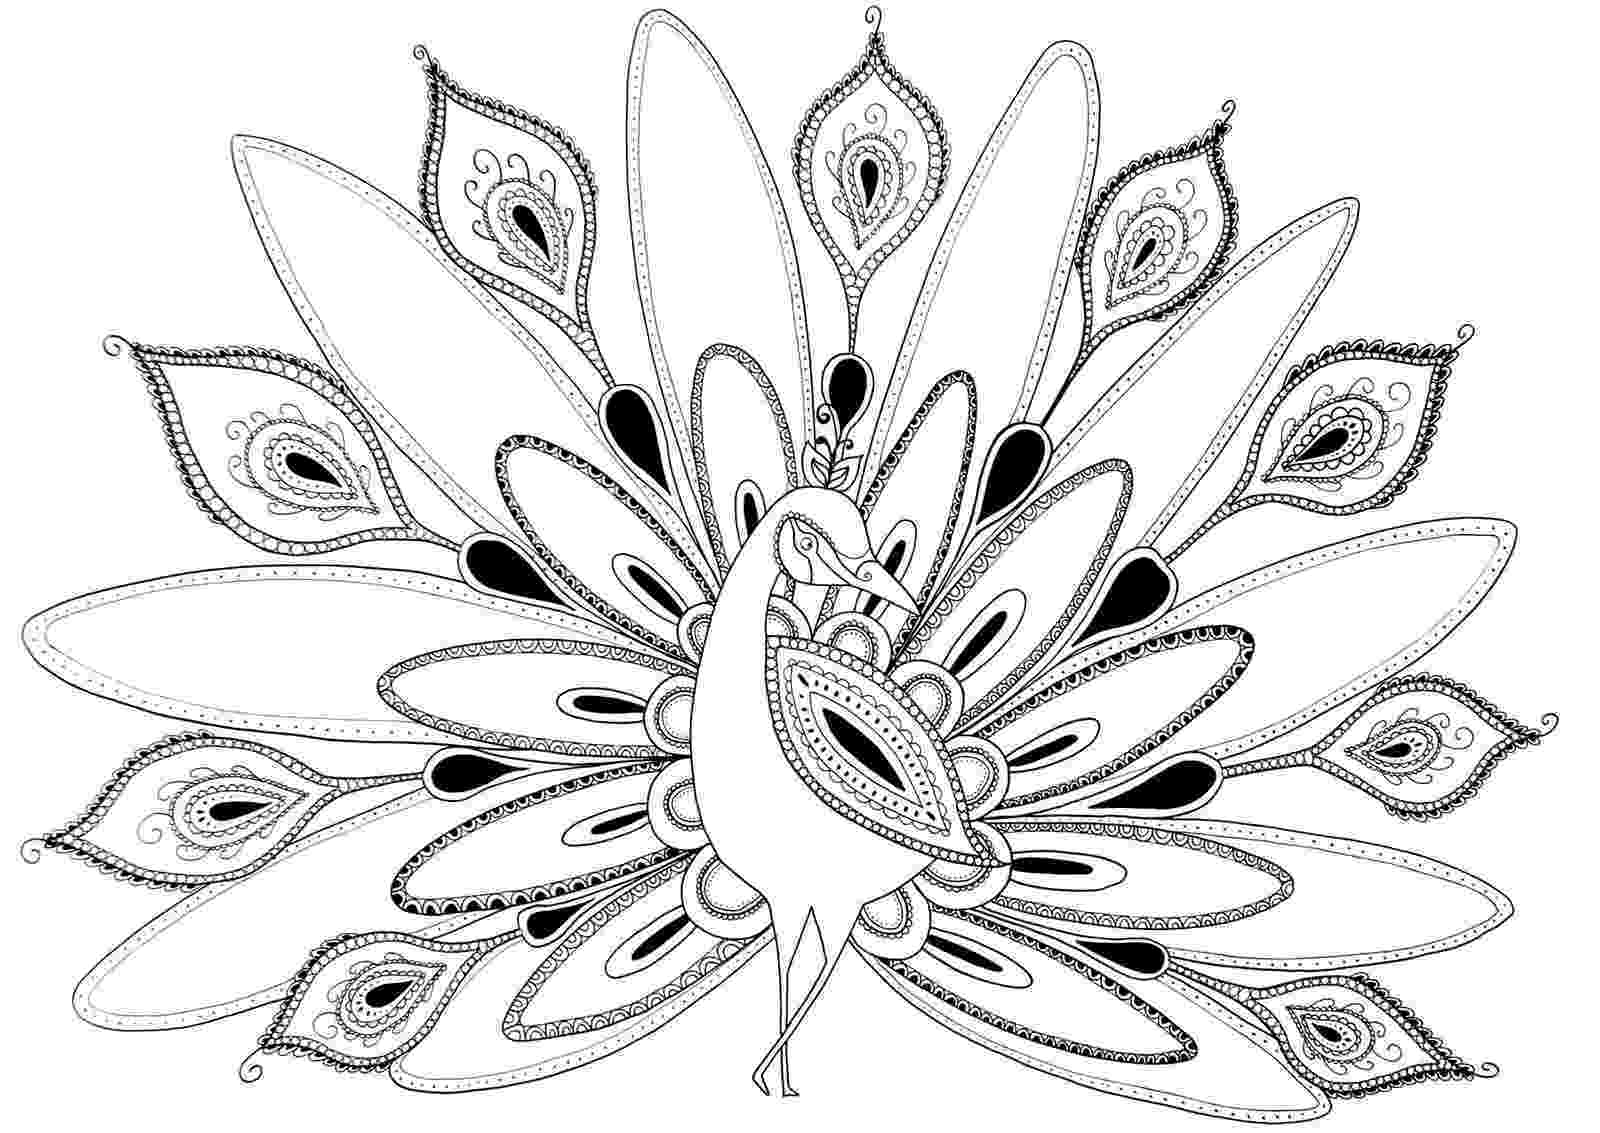 peacock images for coloring peacock only coloring pages for coloring images peacock